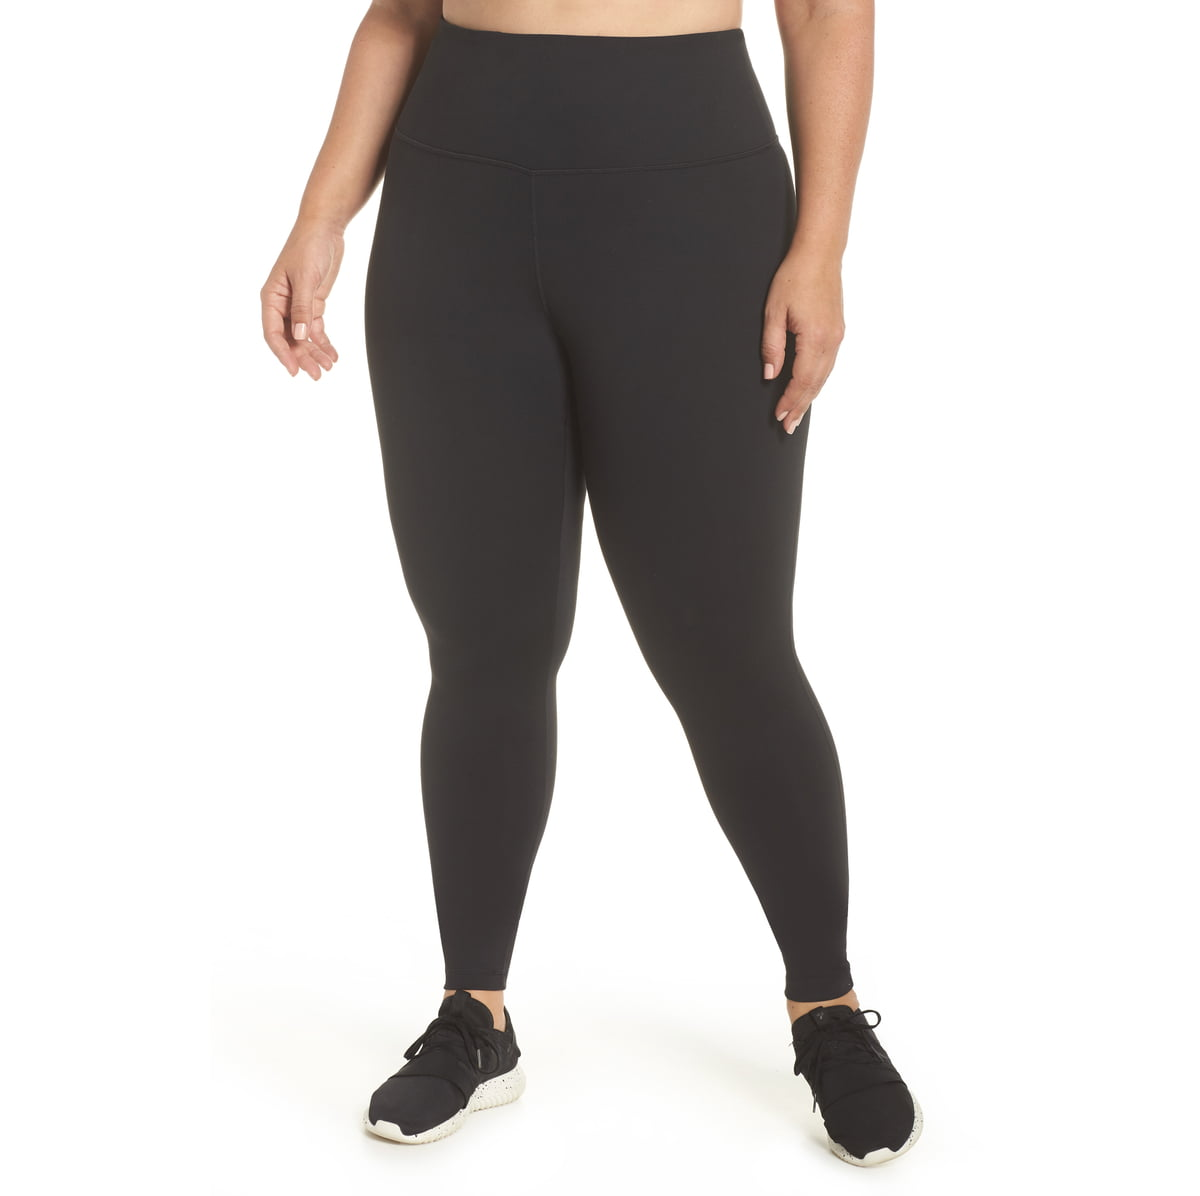 Zella Live-In High-Waist Plus-Size Leggings